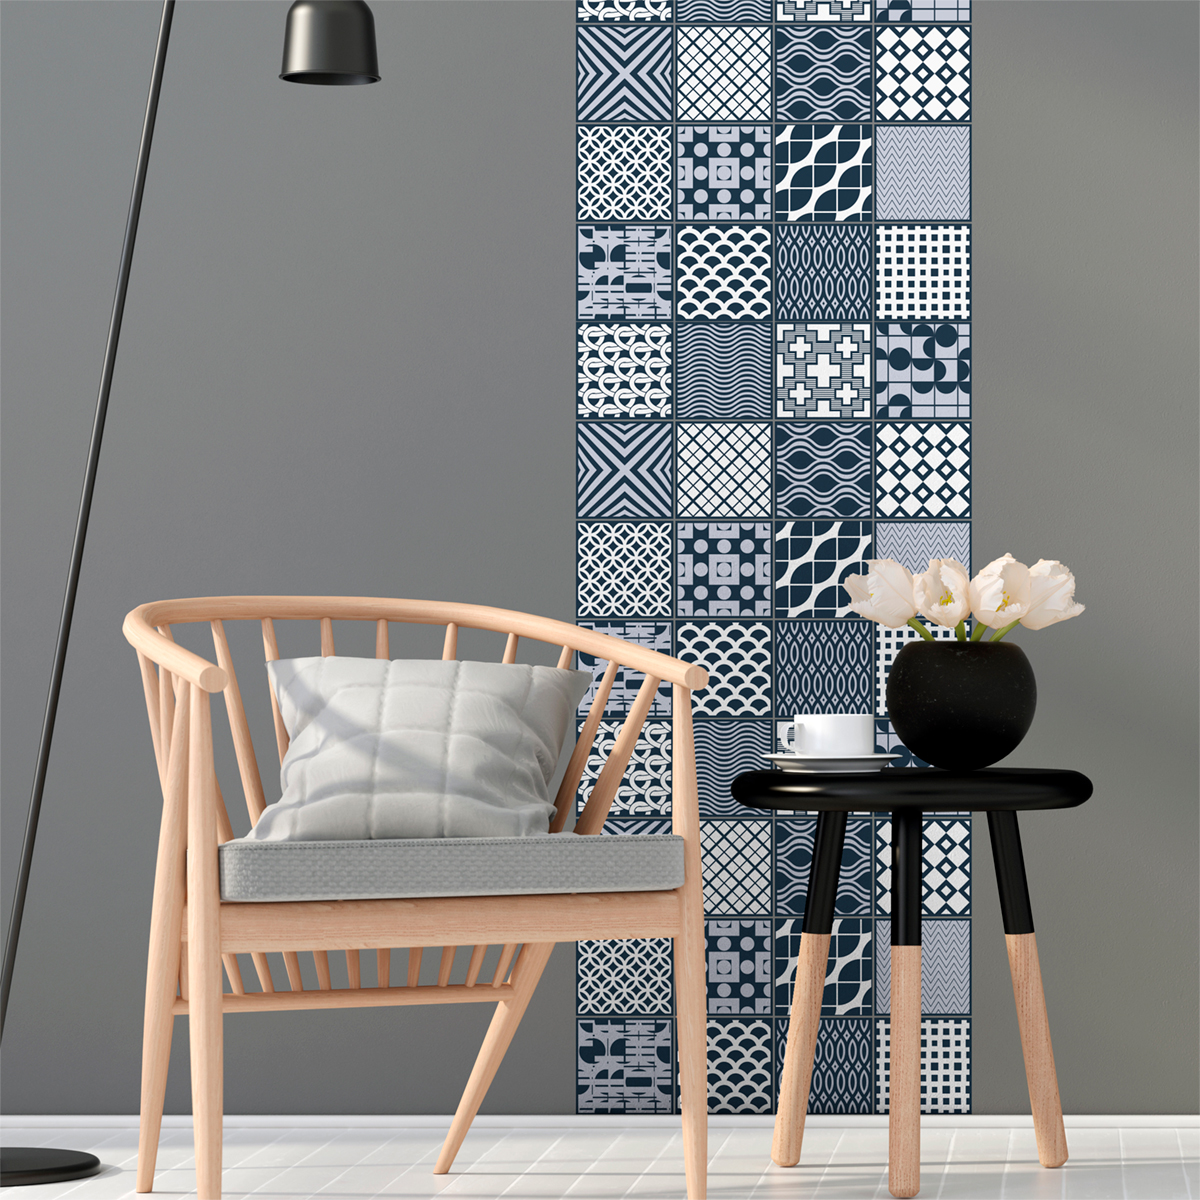 24 stickers carrelages scandinave malmo salle de bain et. Black Bedroom Furniture Sets. Home Design Ideas